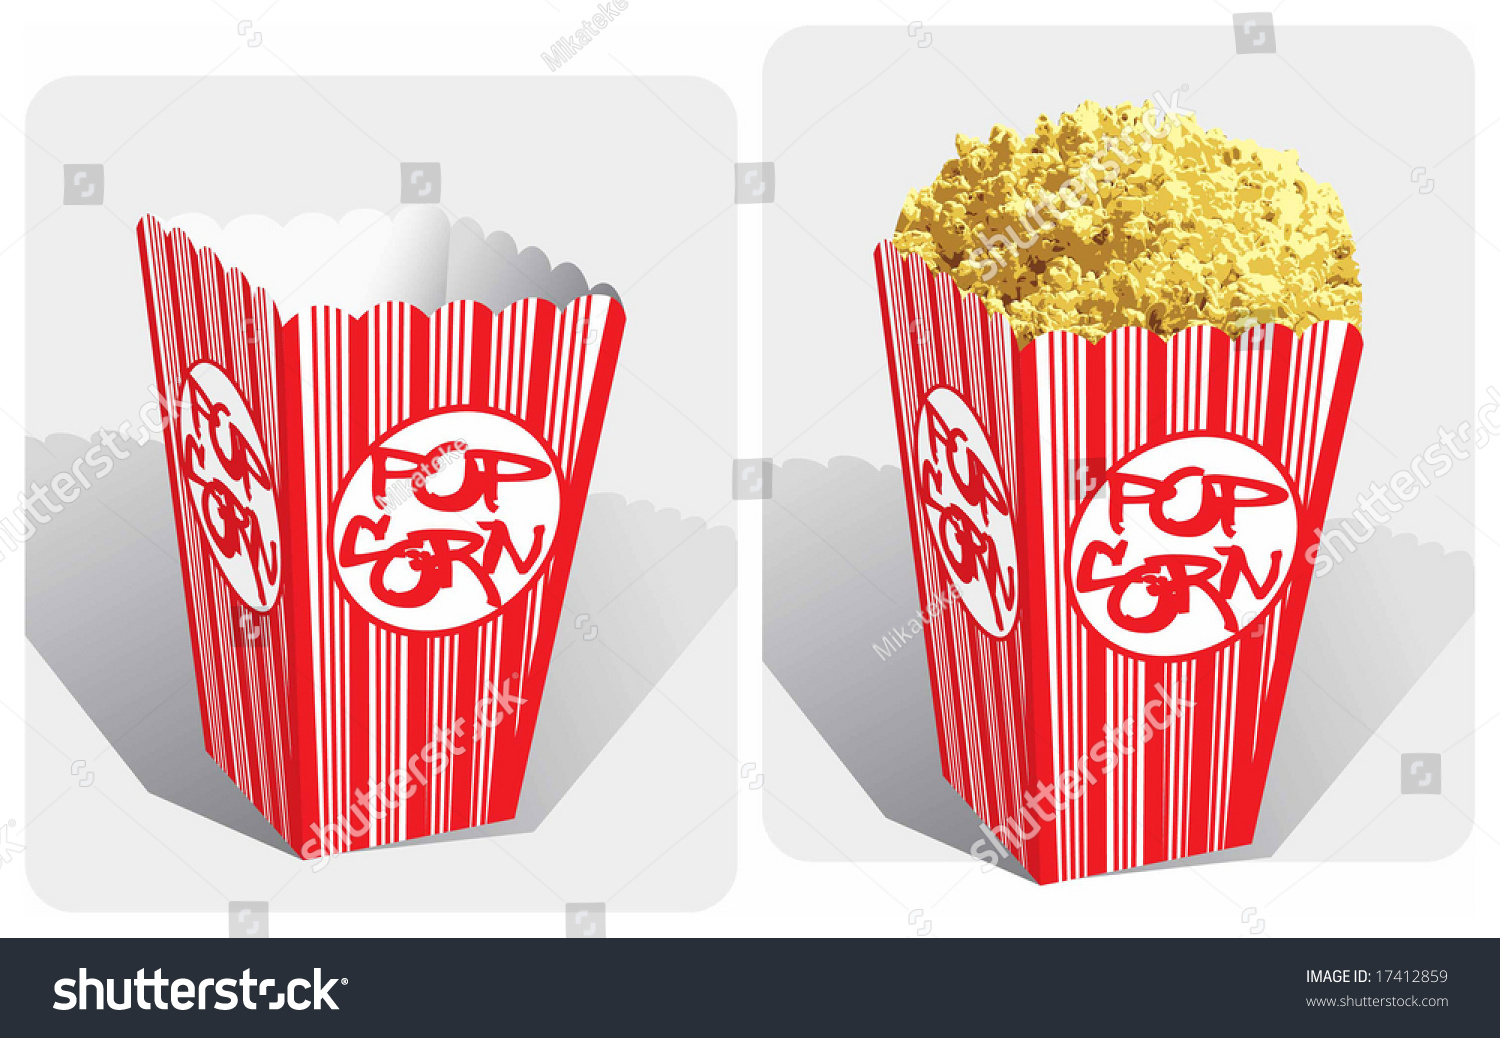 Color Vector Image Of Classic Movie-Theater Popcorn Box ...